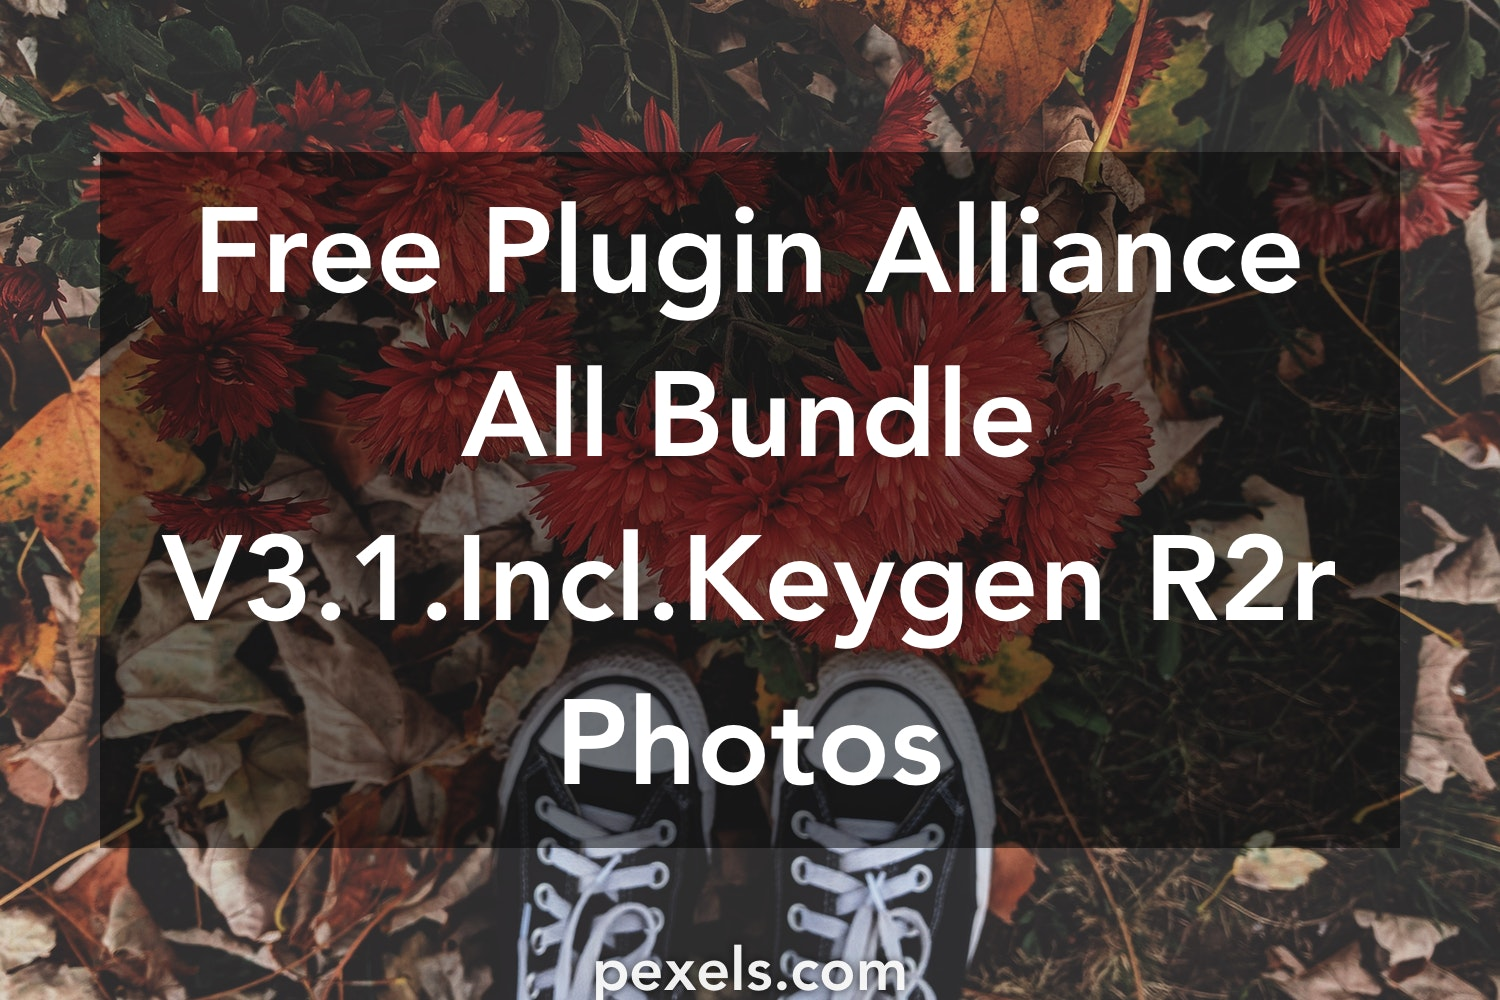 40+ Great Plugin Alliance All Bundle V3 1 Incl Keygen R2r